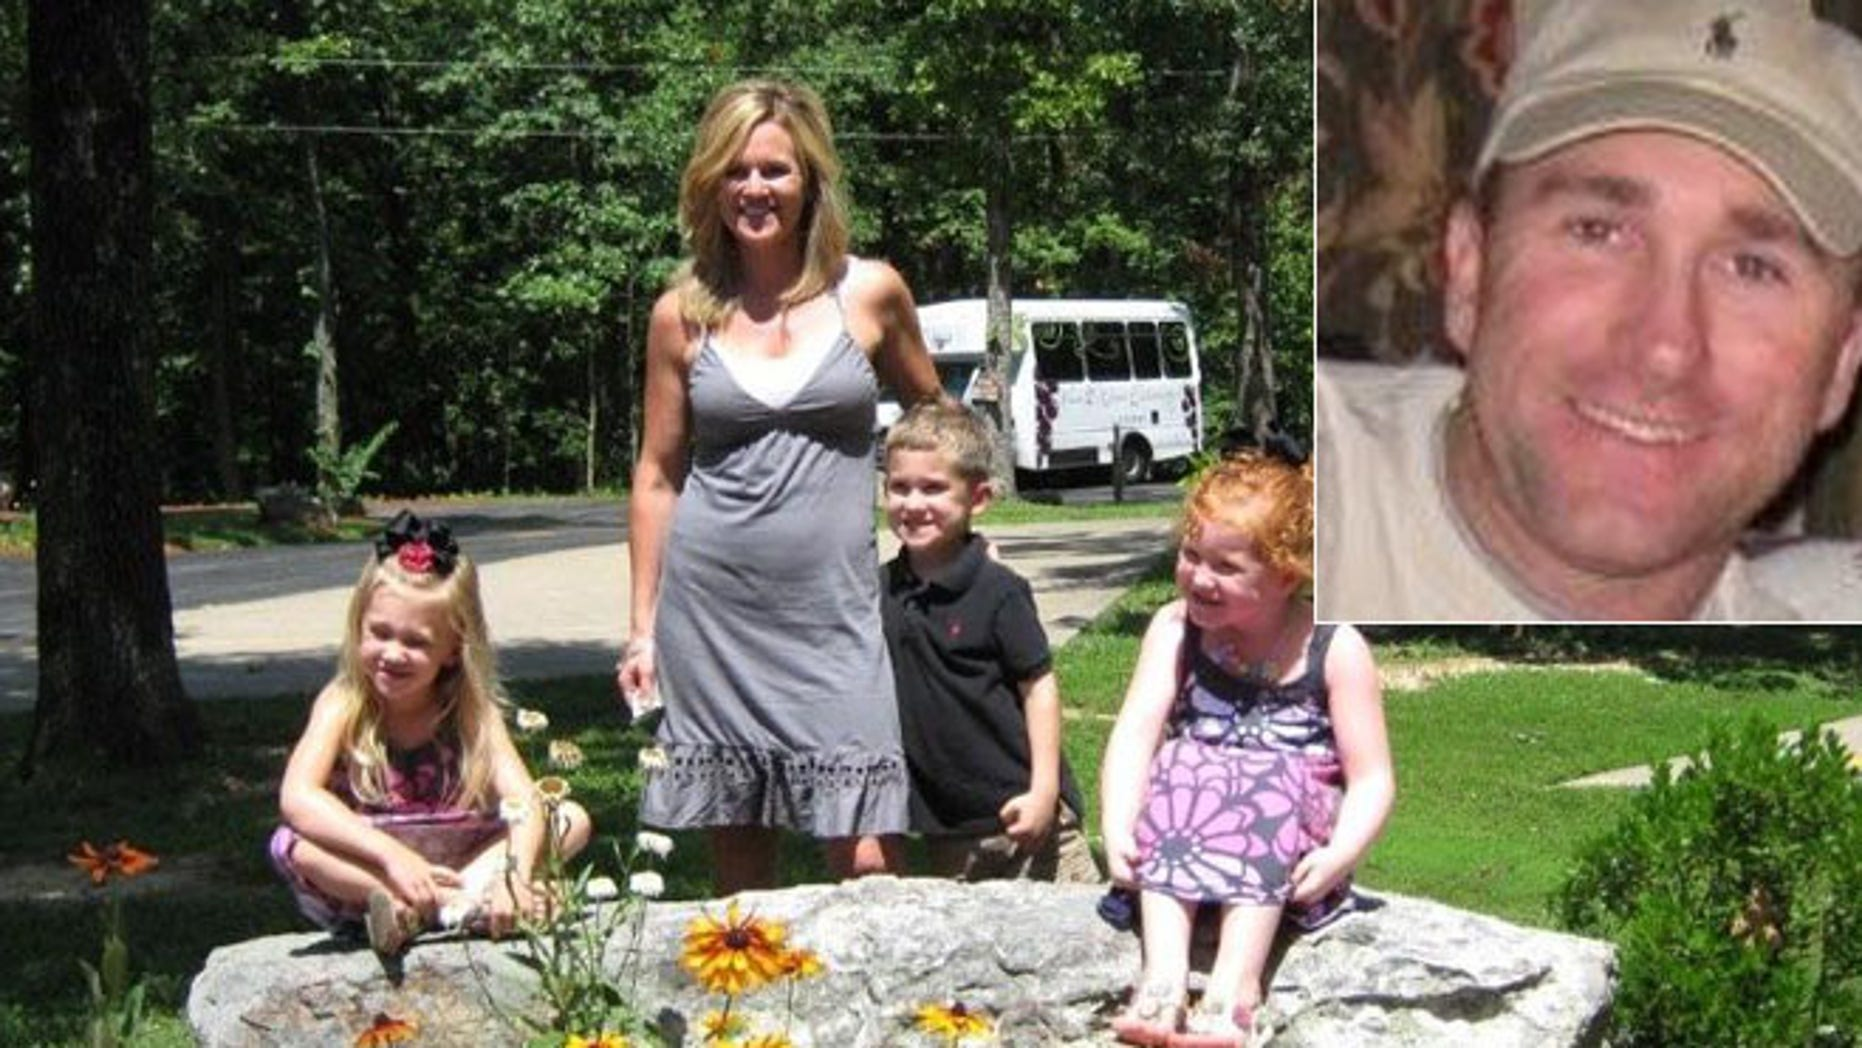 Jacque Sue Waller and her triplet children. Clay Waller, 41, inset, the husband of Jacque Waller, was charged with first-degree murder in her death even though his estranged wife's body has not been found.